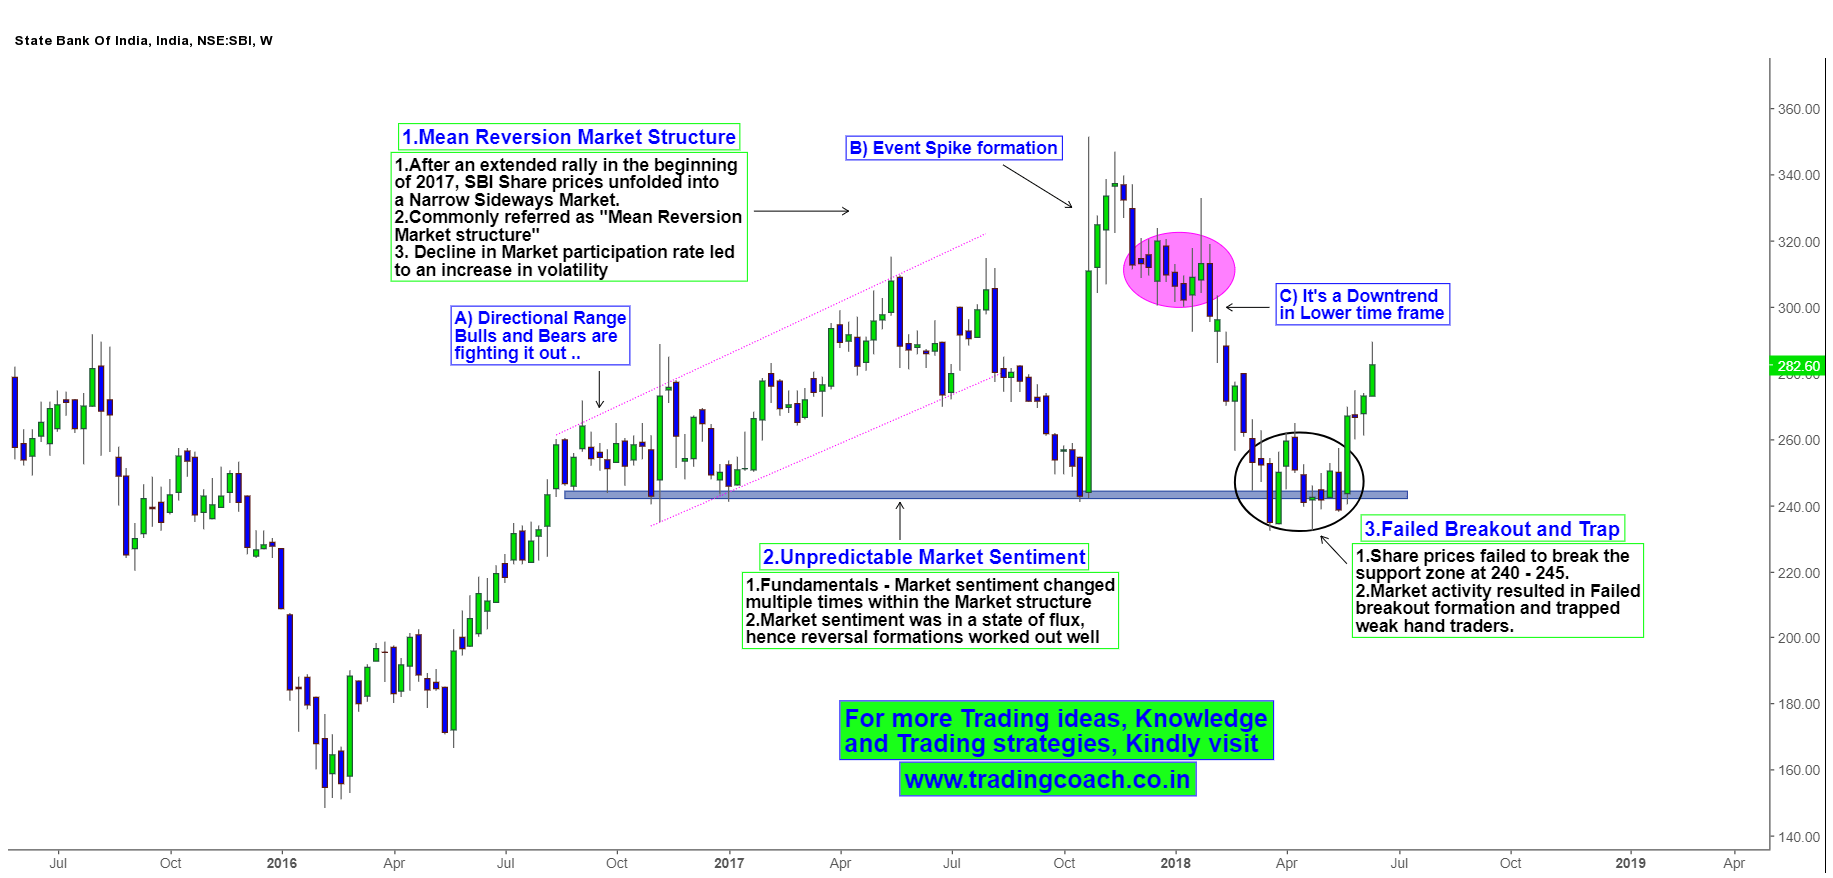 SBI Shares - Price action has formed failed Breakout Formation in Mean reversion Structure